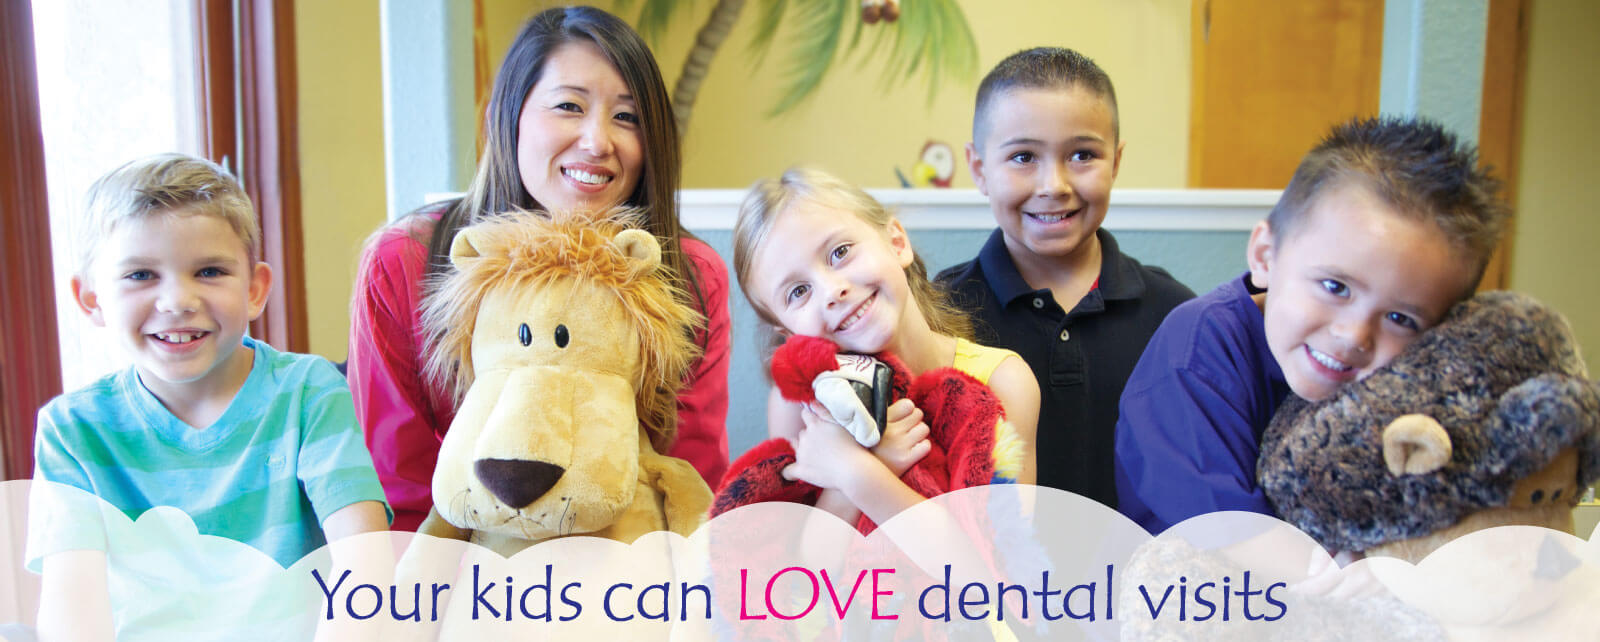 Jean Chan, DDS & Associates Pediatric Dentistry